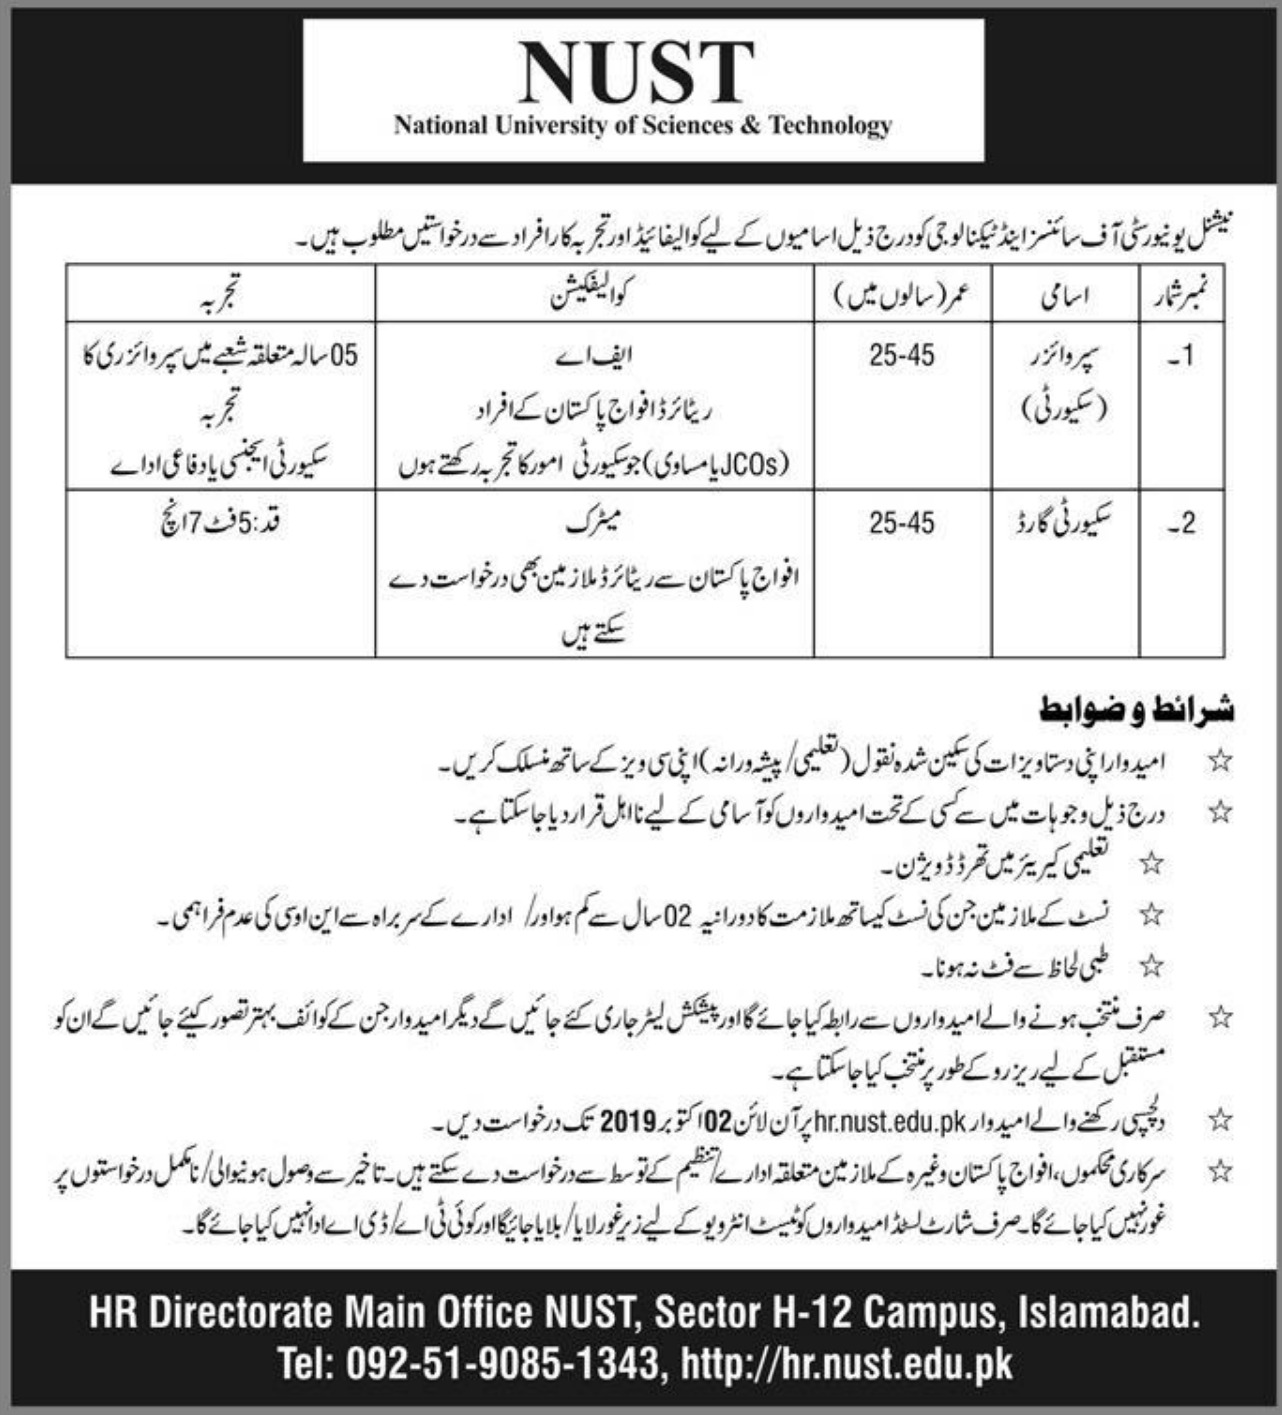 NUST Jobs 2019 National University of Sciences & Technology